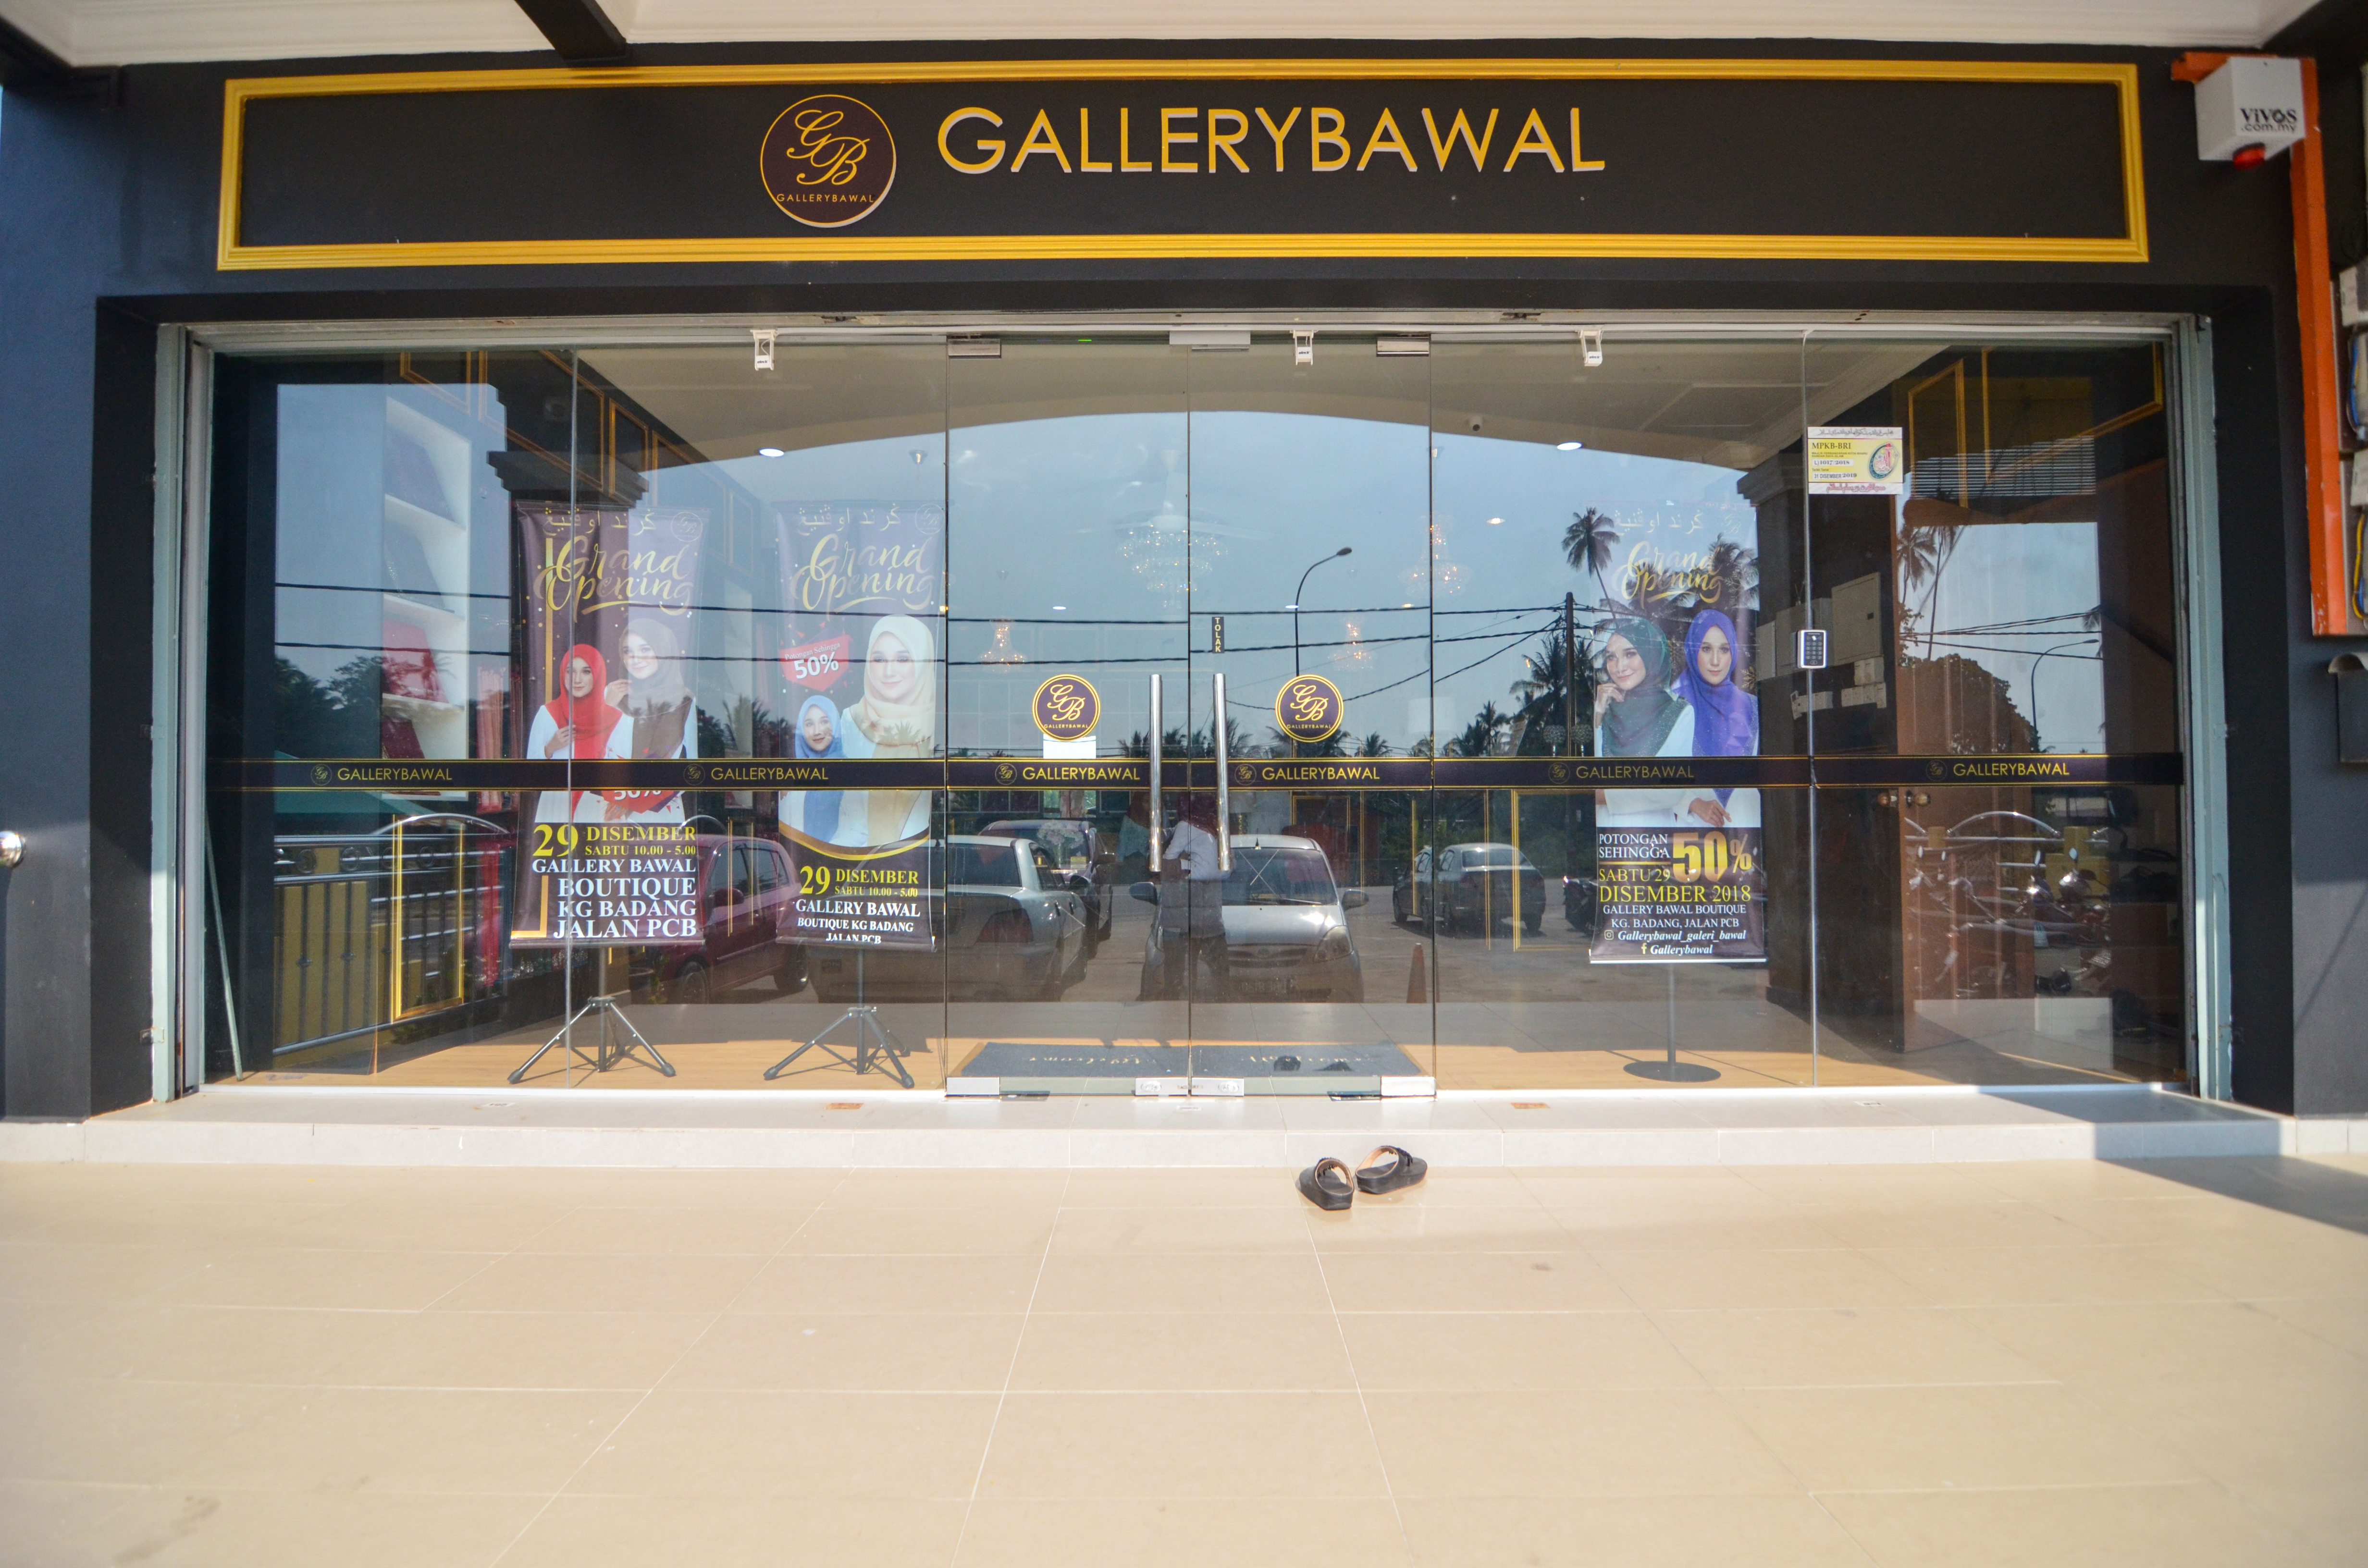 Gallery Bawal's store front